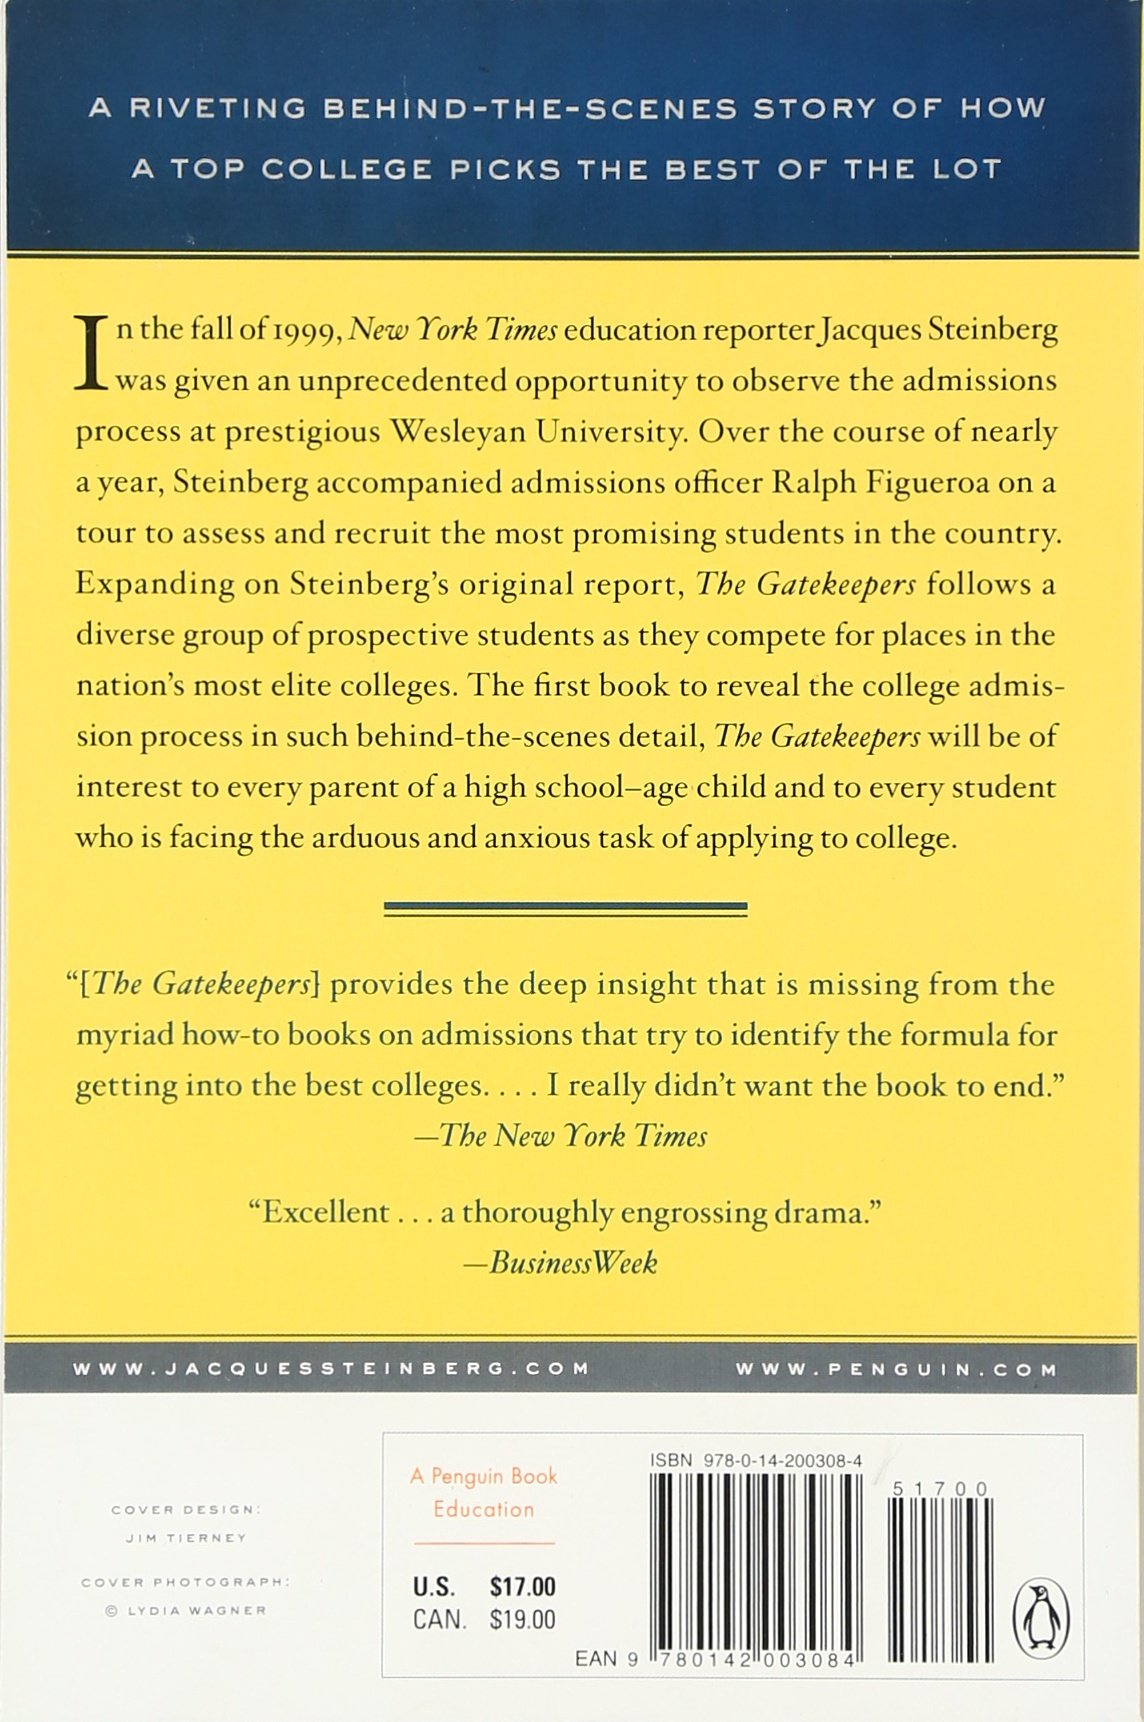 The Gatekeepers: Inside the Admissions Process of a Premier College:  Jacques Steinberg: 9780506001008: Amazon.com: Books